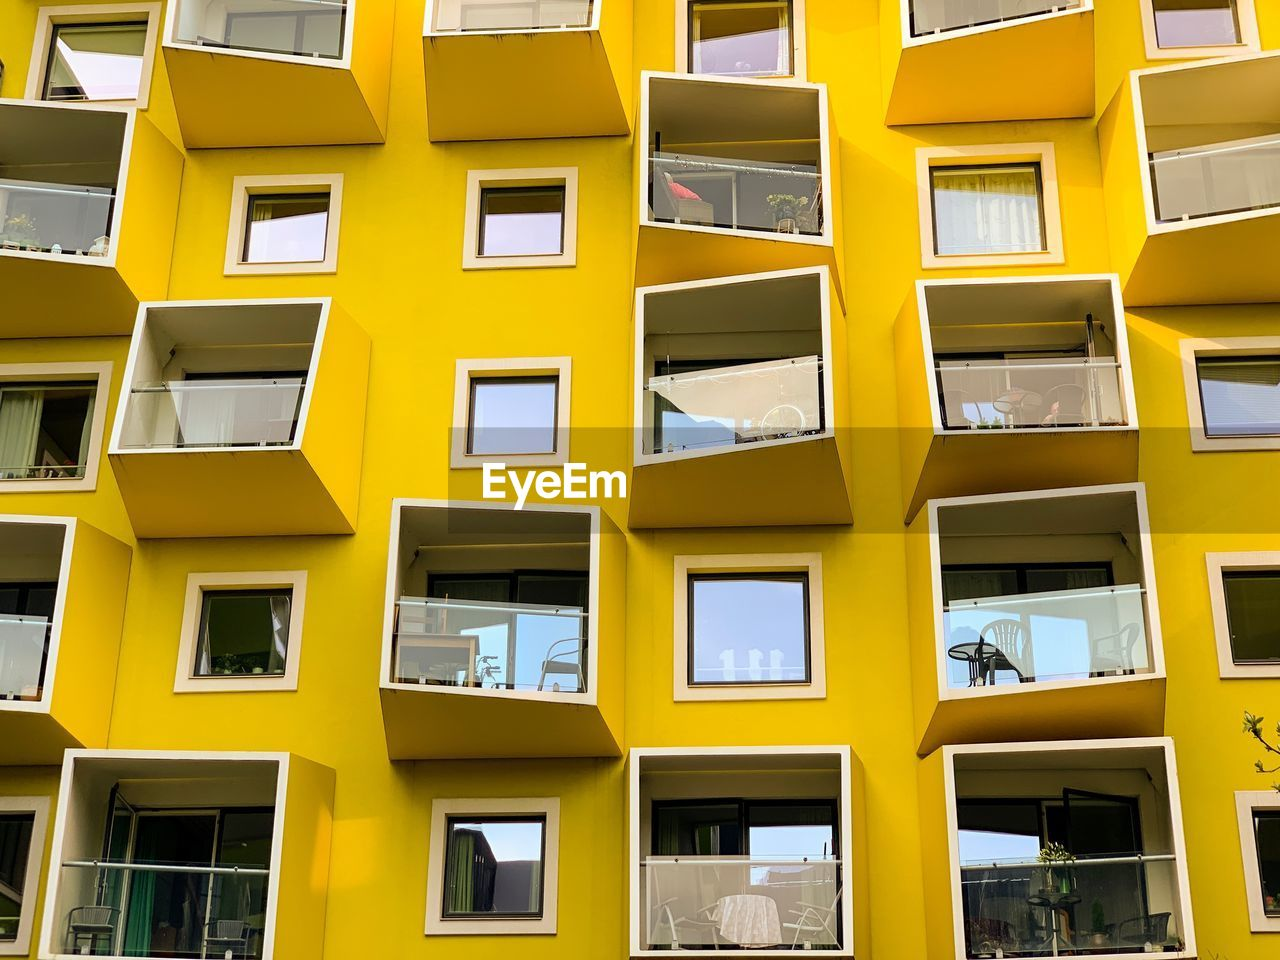 yellow, architecture, built structure, building exterior, window, residential district, building, backgrounds, no people, full frame, city, repetition, low angle view, day, apartment, balcony, glass - material, in a row, outdoors, pattern